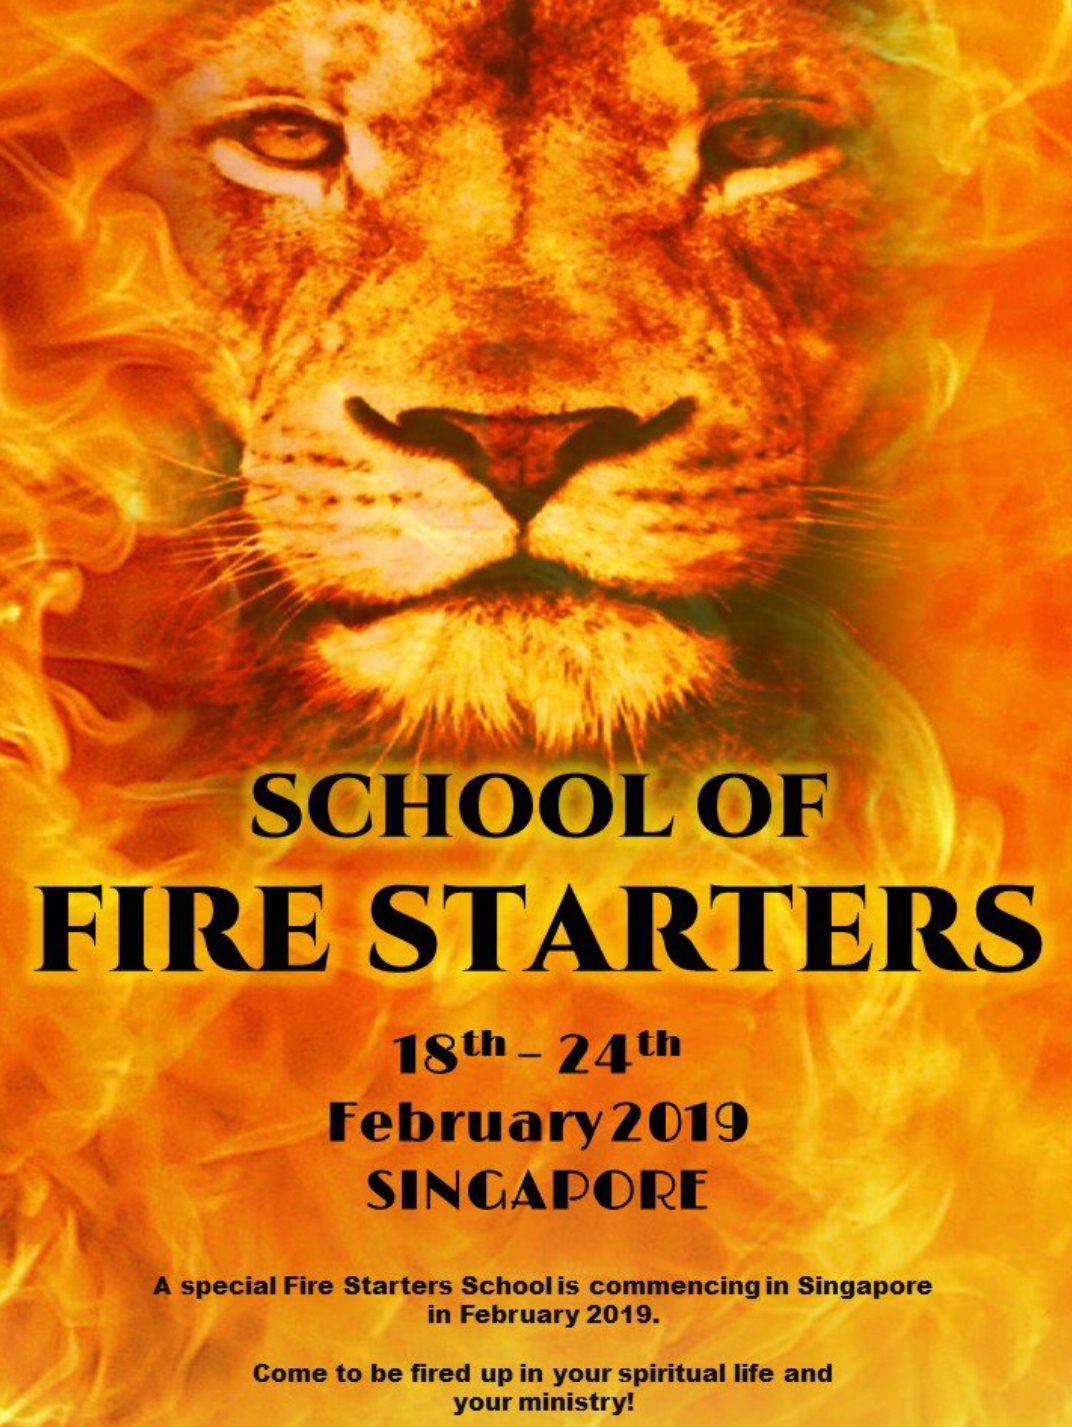 Name of our new Bible School - School of Fire Starters